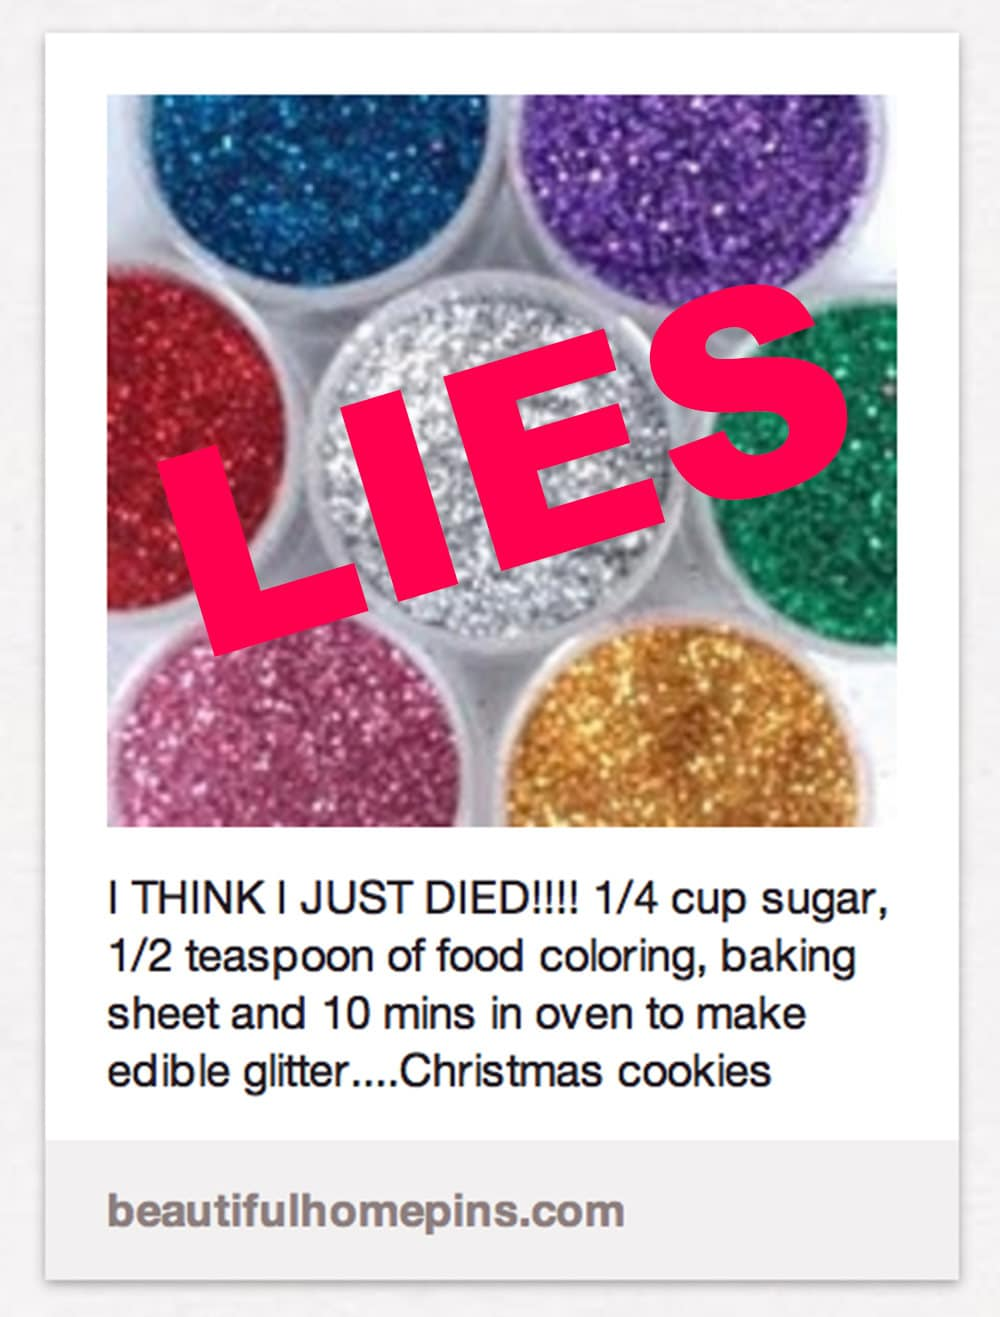 edible glitter recipe